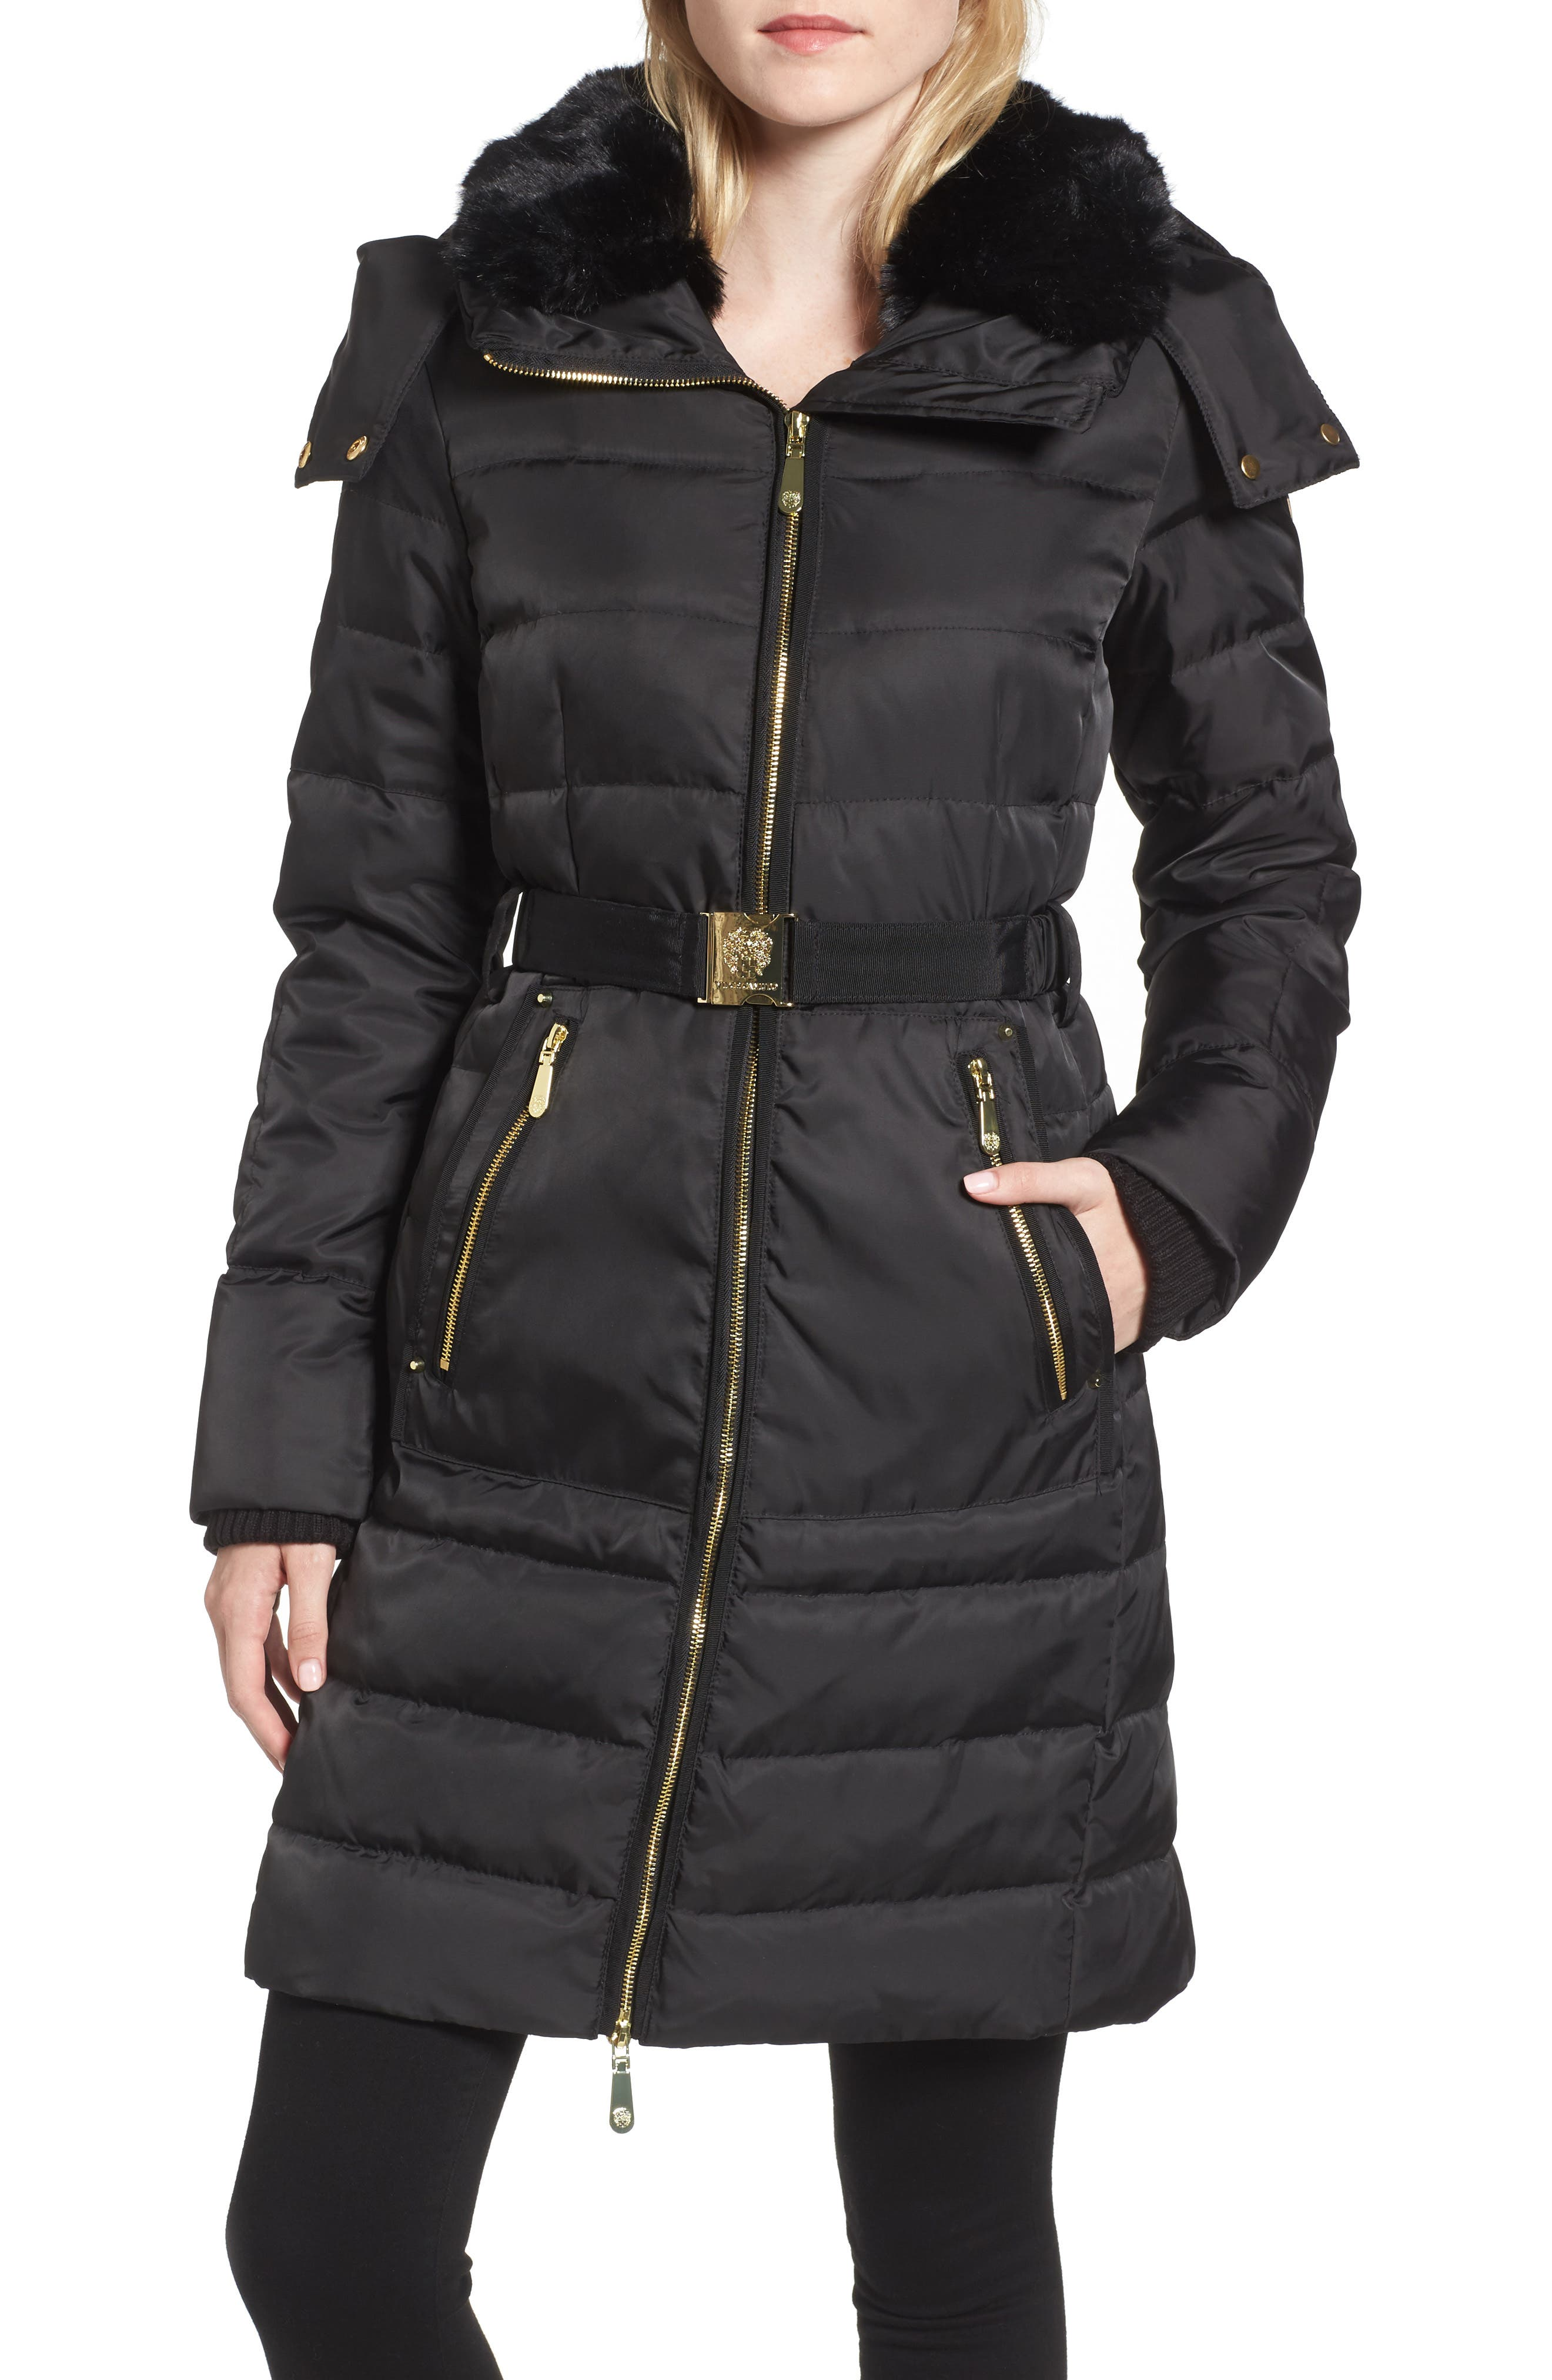 Vince Camuto Belted Coat with Detachable Faux Fur